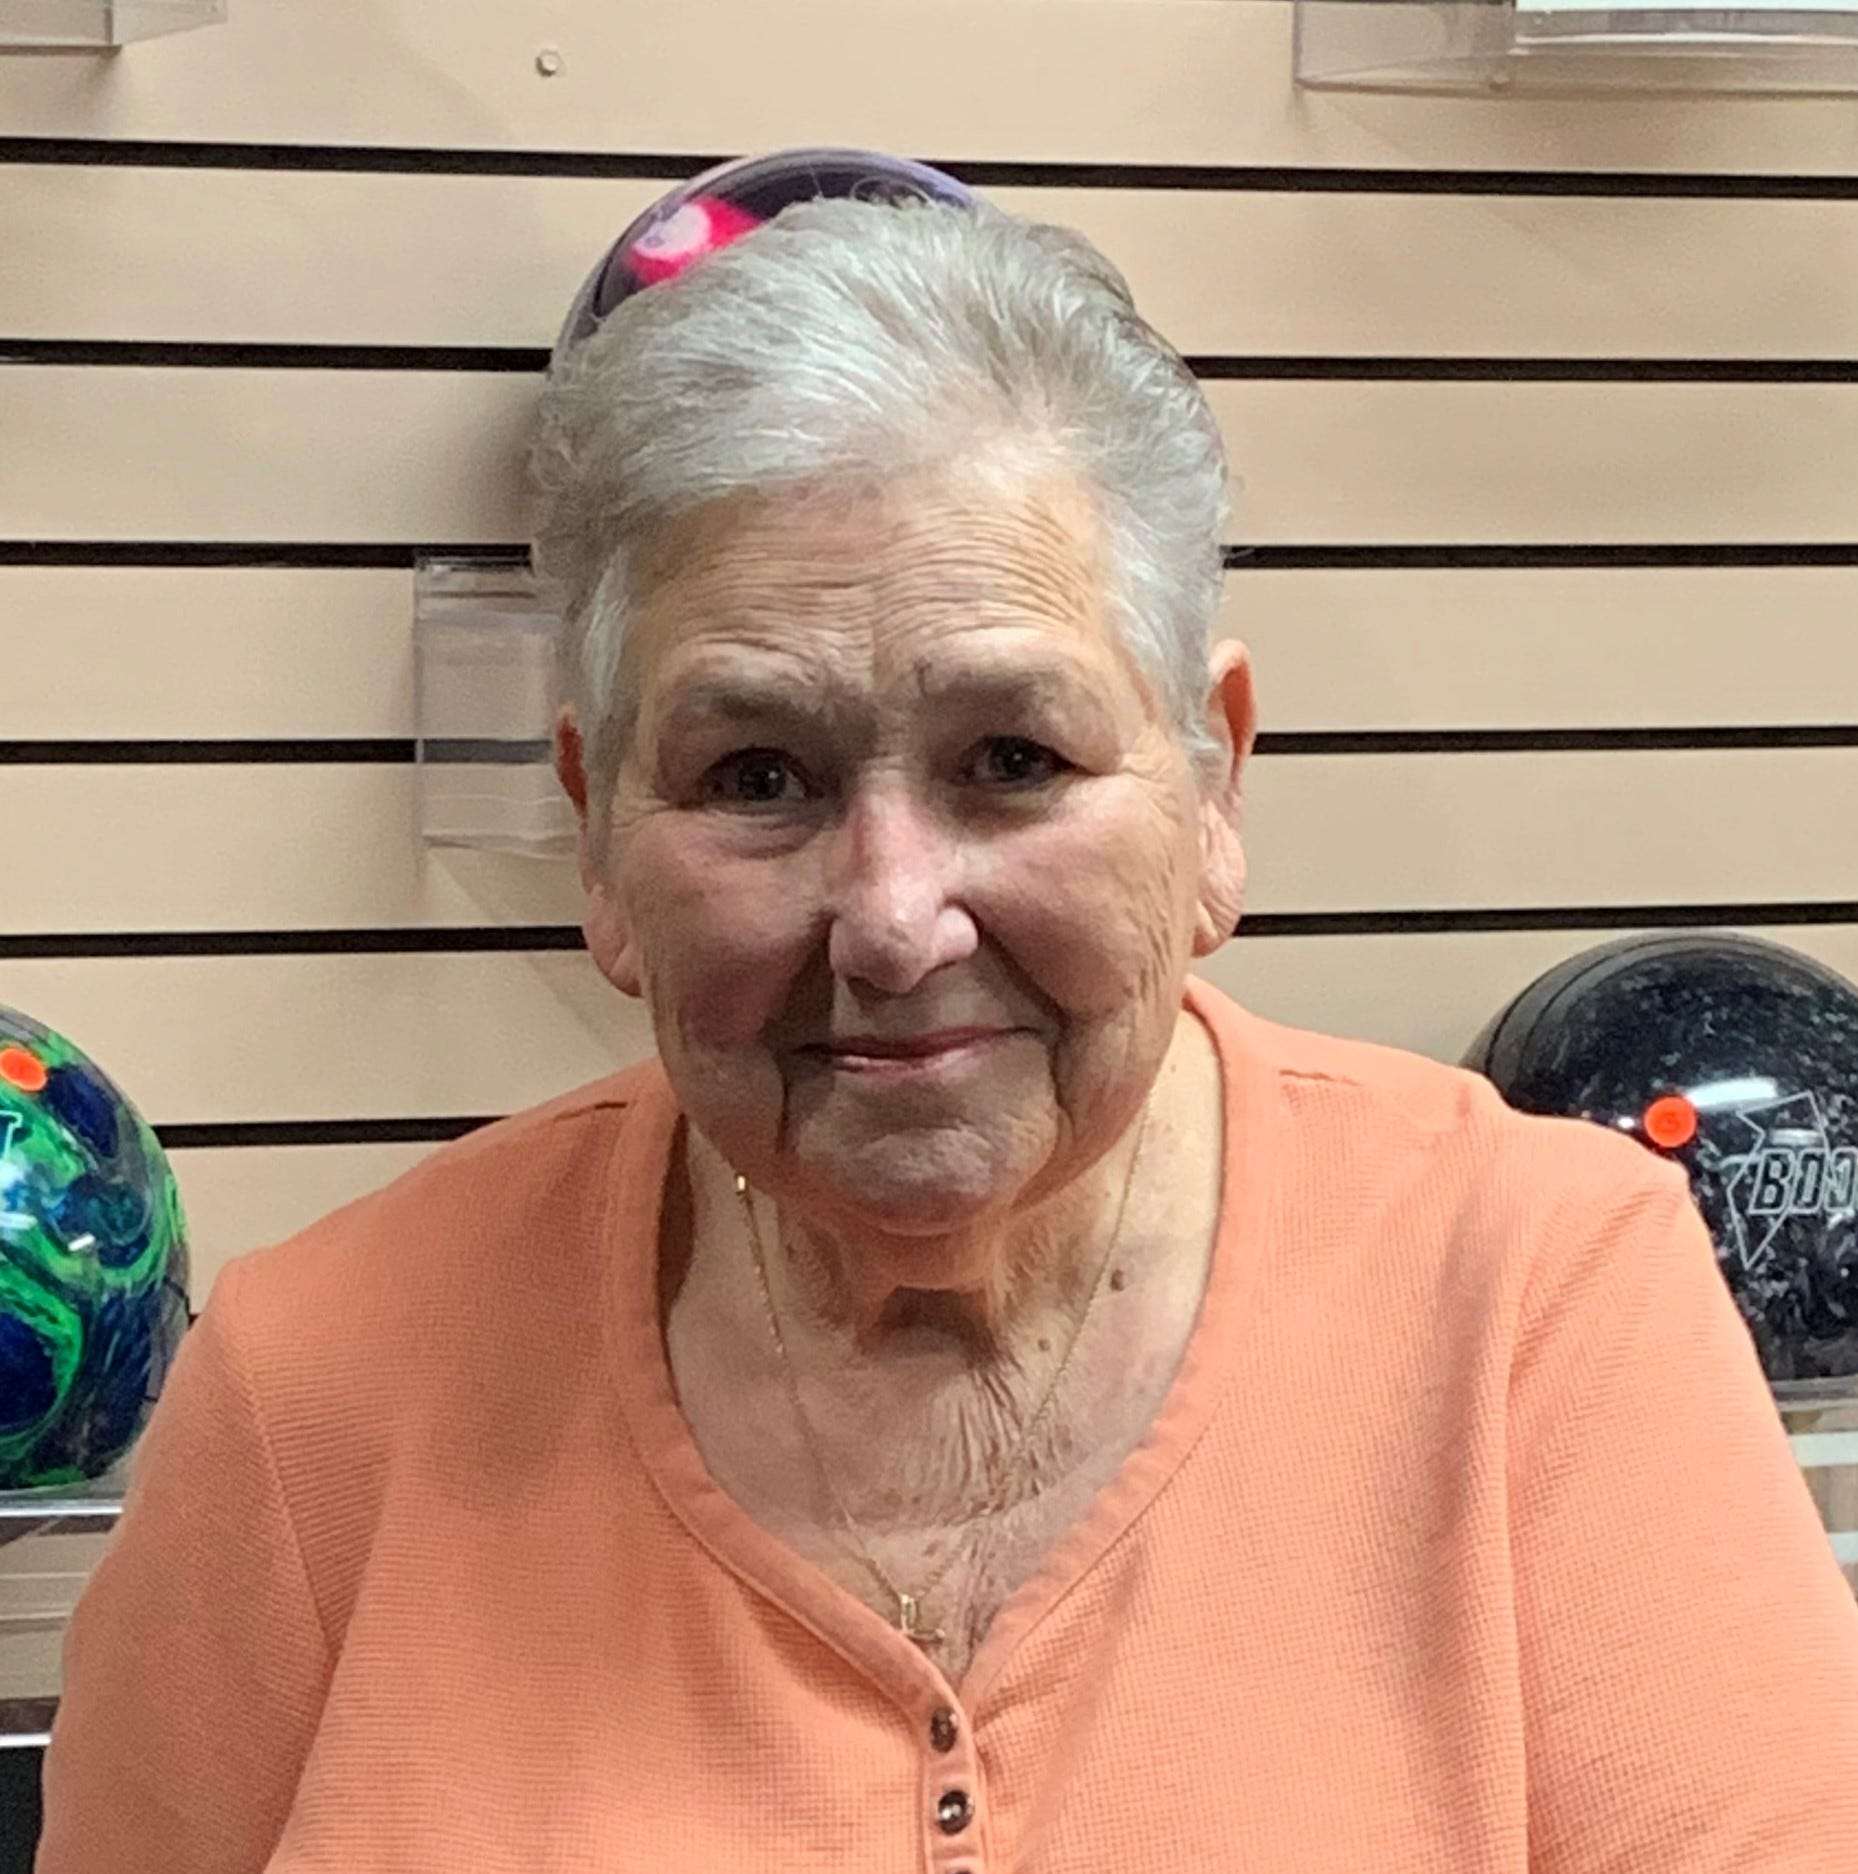 Senior Games Hall-of-Famer hits season-high at Sunset Lanes